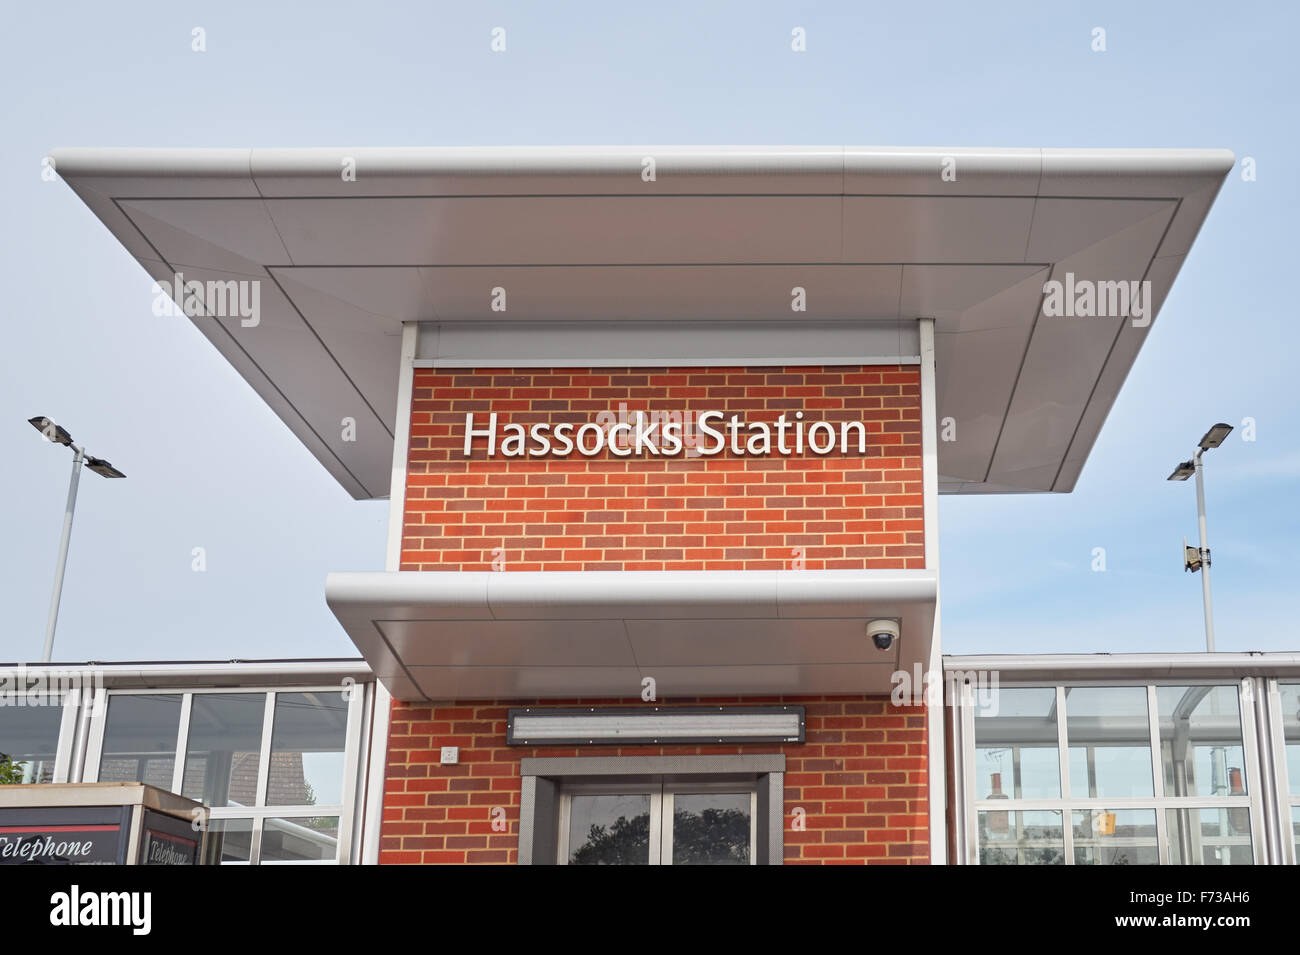 hassocks west sussex stock photos hassocks west sussex stock